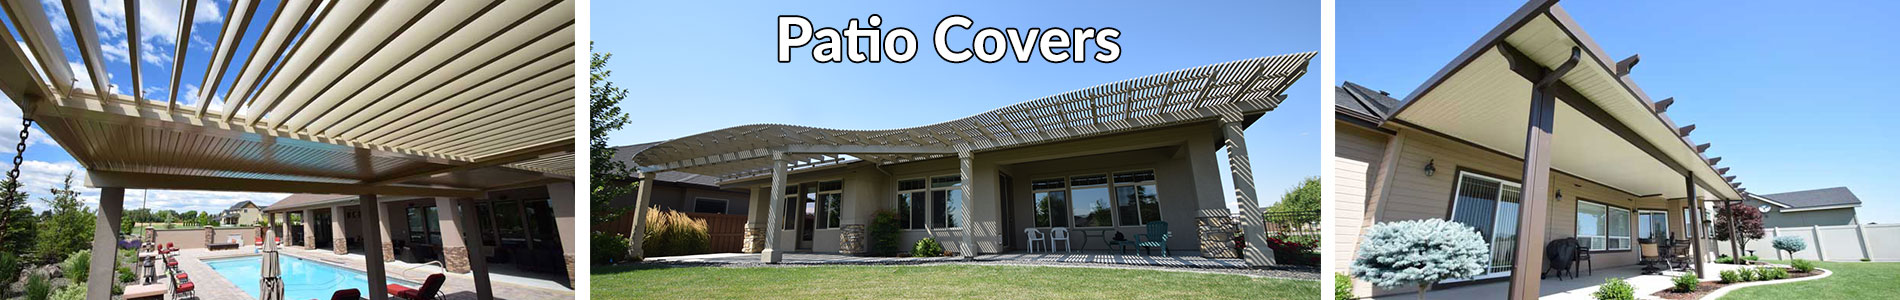 PatioCovers